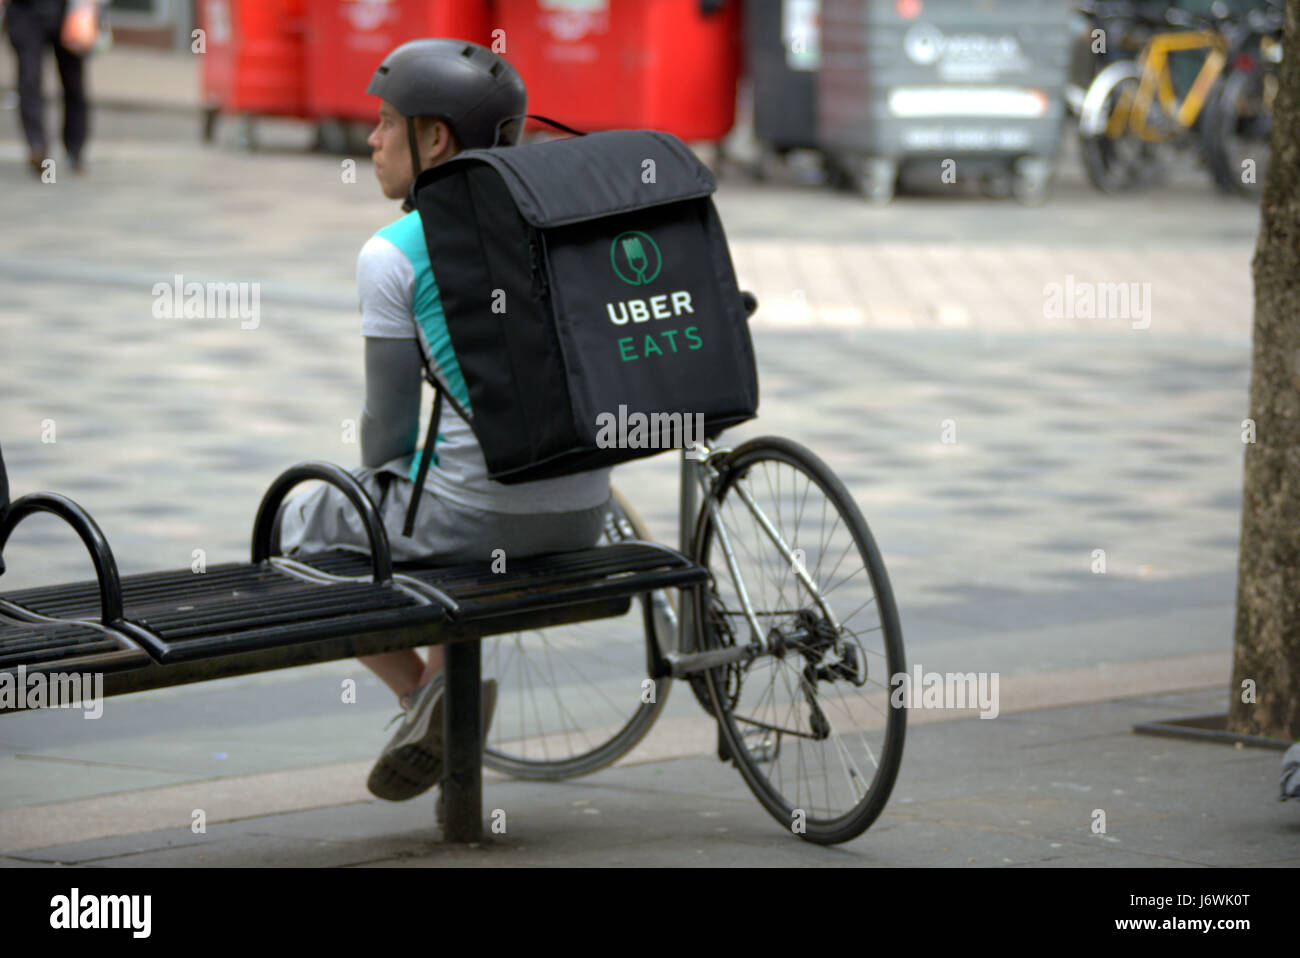 uber eats bike delivery